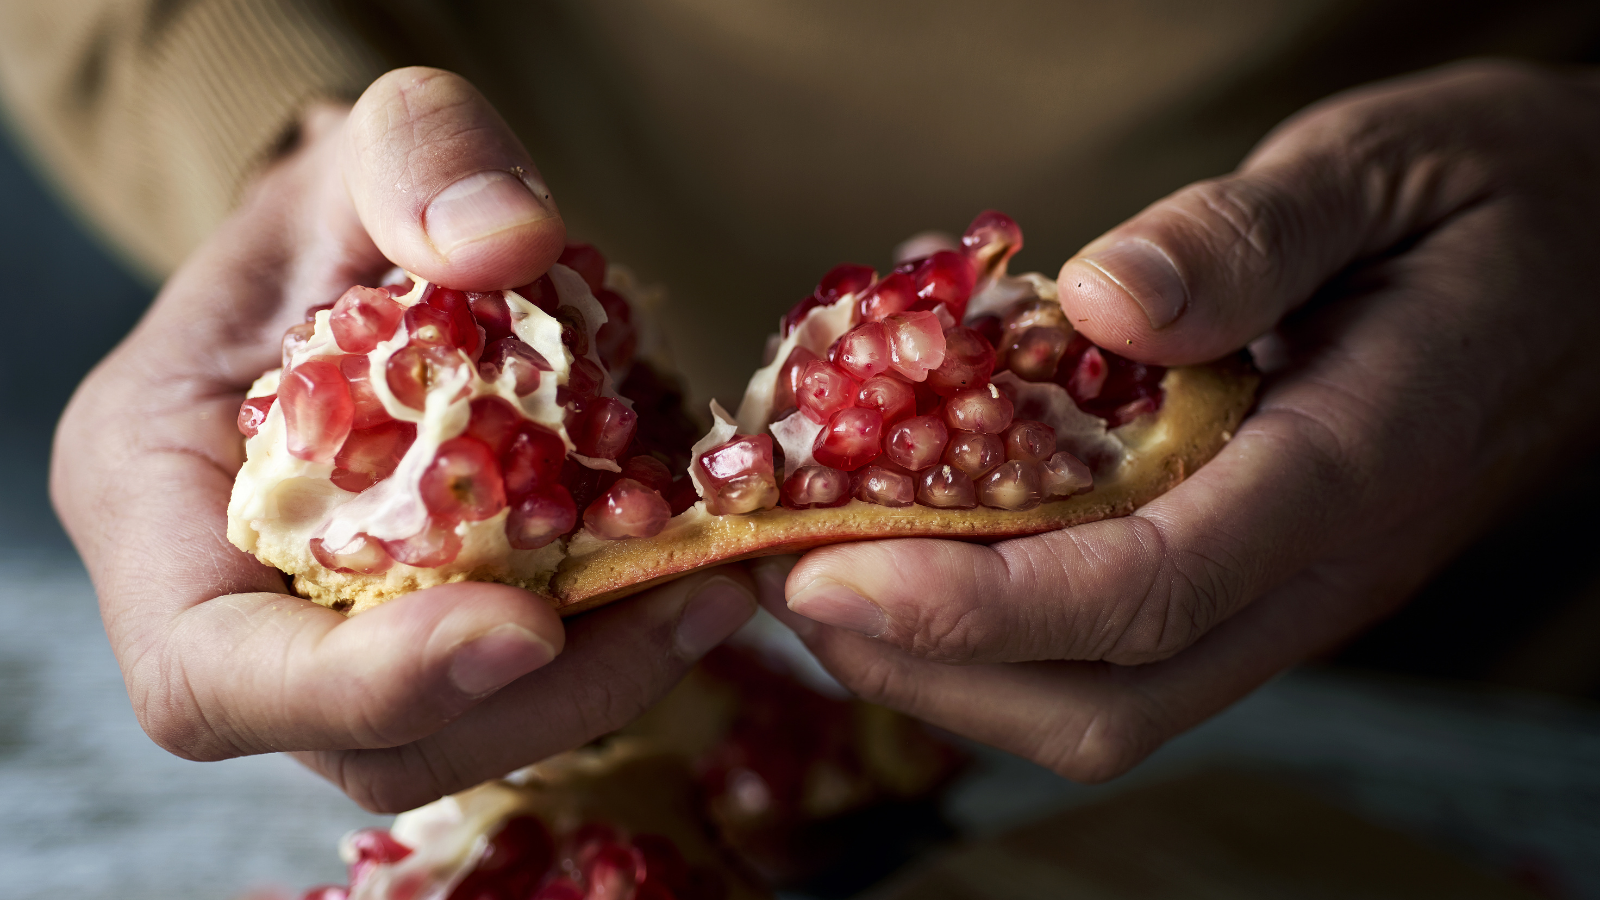 Research suggests that pomegranates have cancer-fighting properties, specifically breast cancer